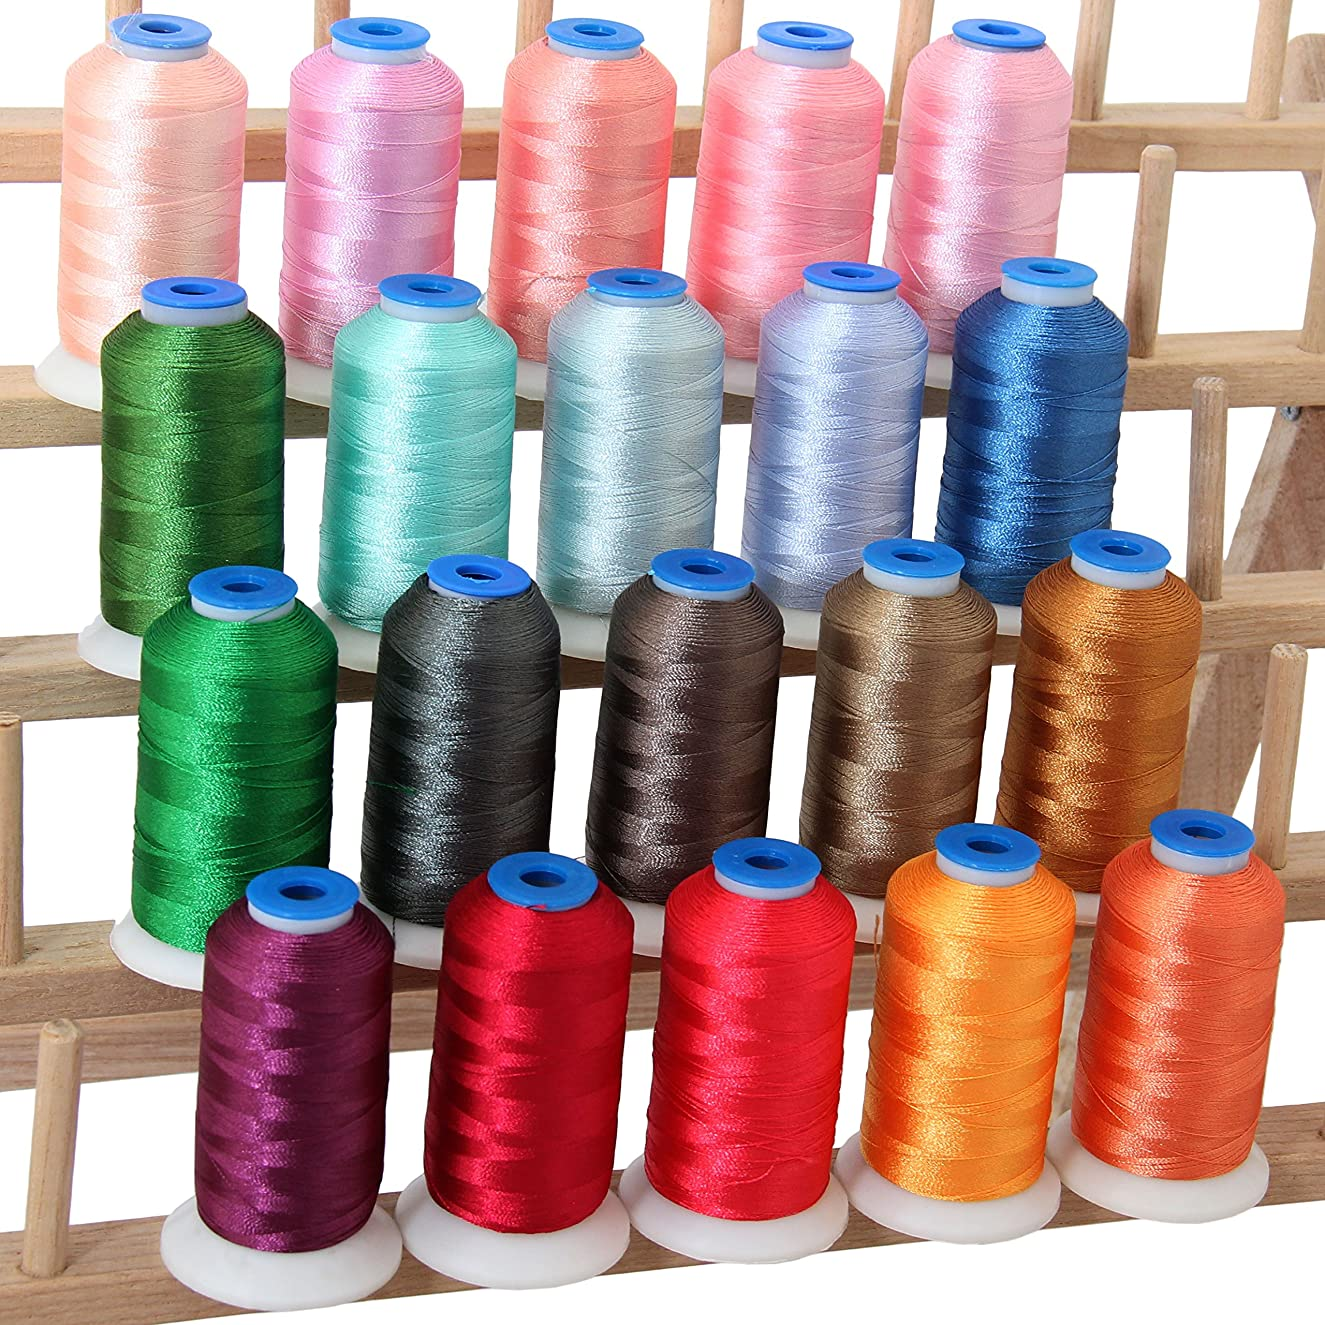 Threadart 20 Spool Polyester Embroidery Machine Thread Pastel Colors | 1000M Spools 40wt | For Brother Babylock Janome Singer Pfaff Husqvarna Bernina Machines - 10 Sets Available